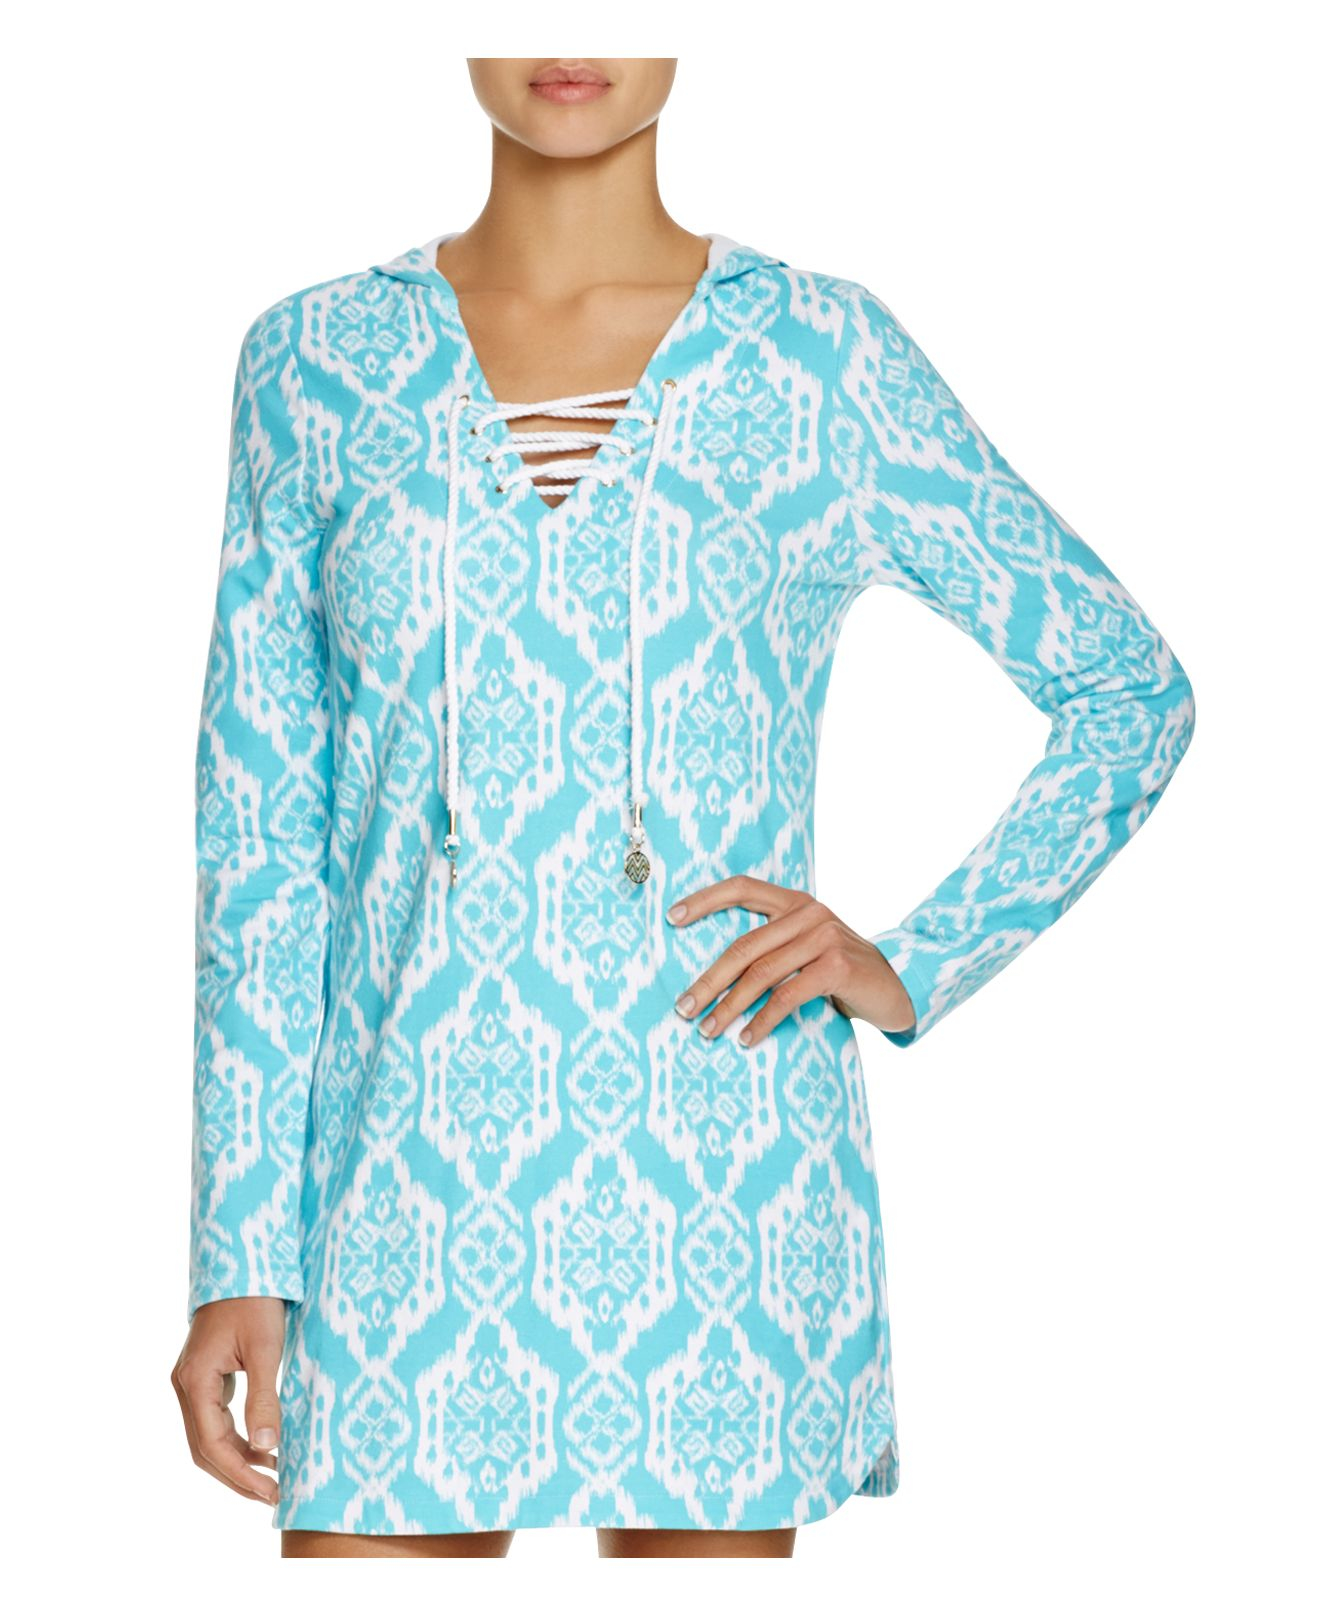 d08b35cd22813 Macbeth Collection Printed Hooded French Terry Tunic Swim Cover-up ...